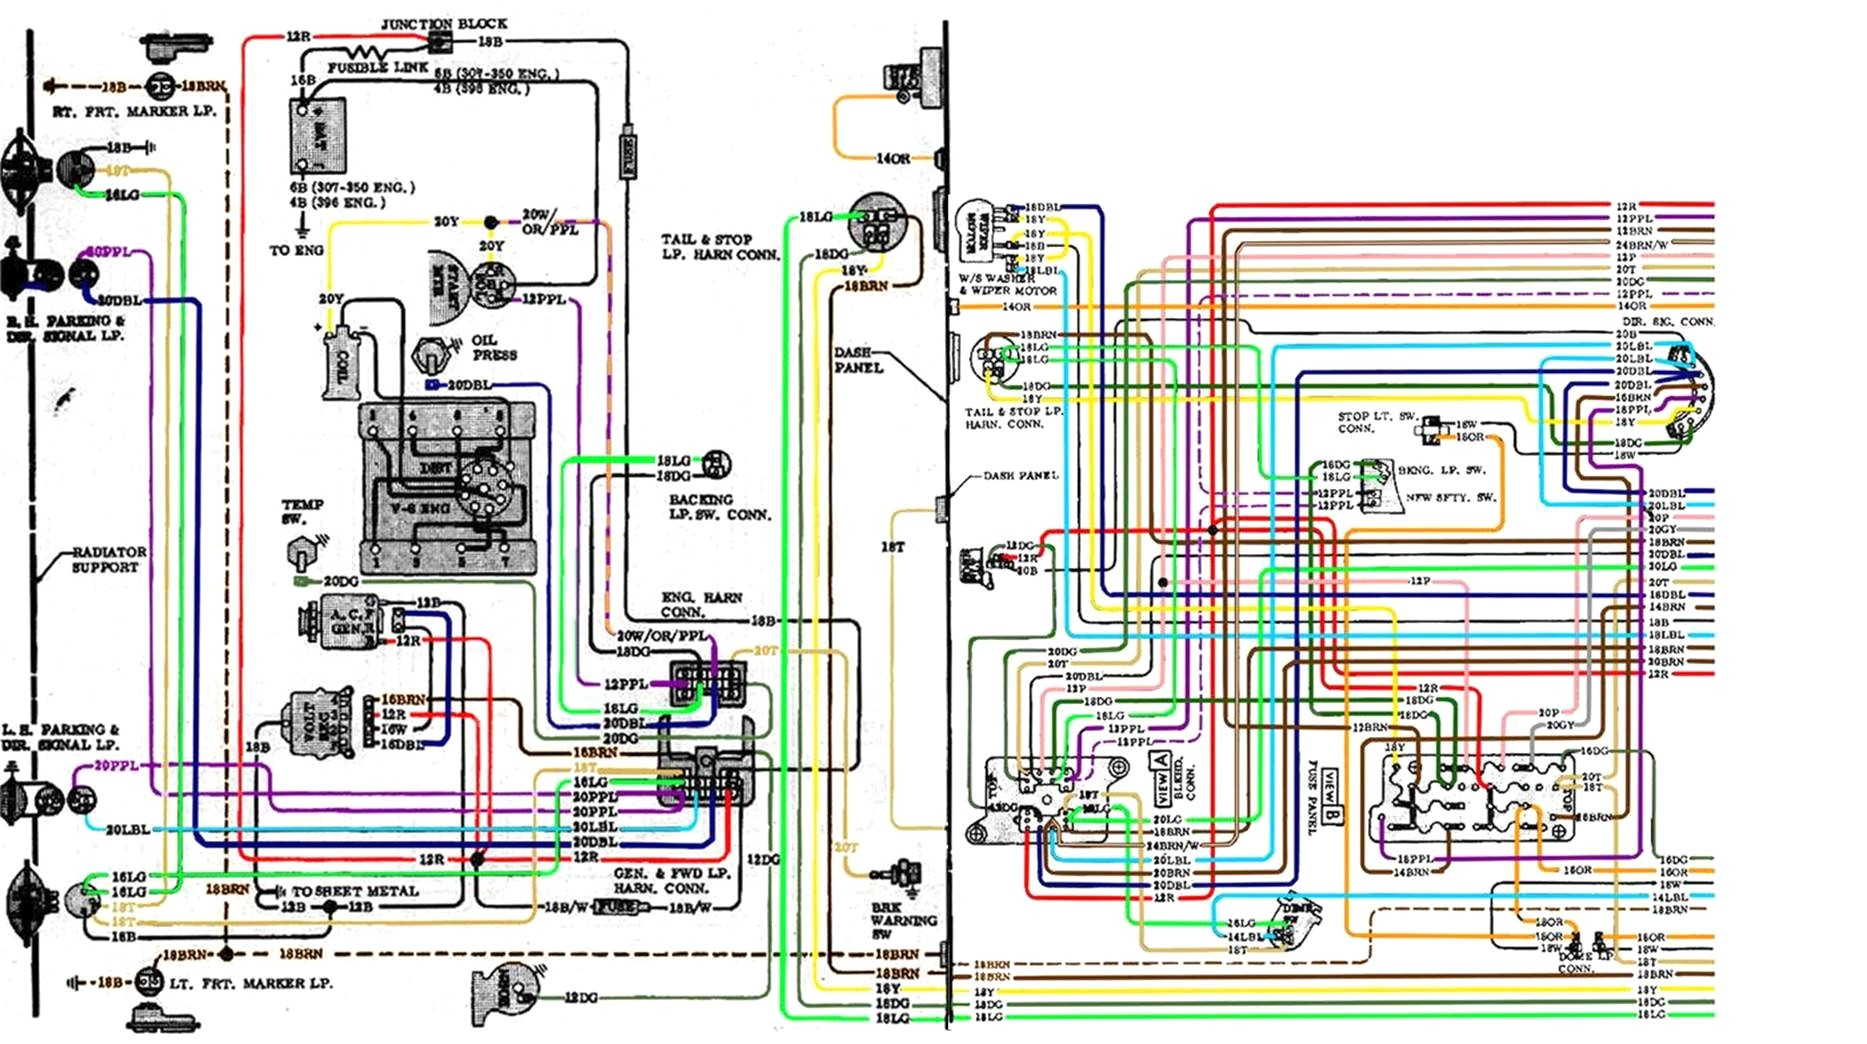 1970 Gmc Truck Wiring Diagram Diagrams Schema 64 Chevy Pickup 1972 Wire Data U2022 Schematic